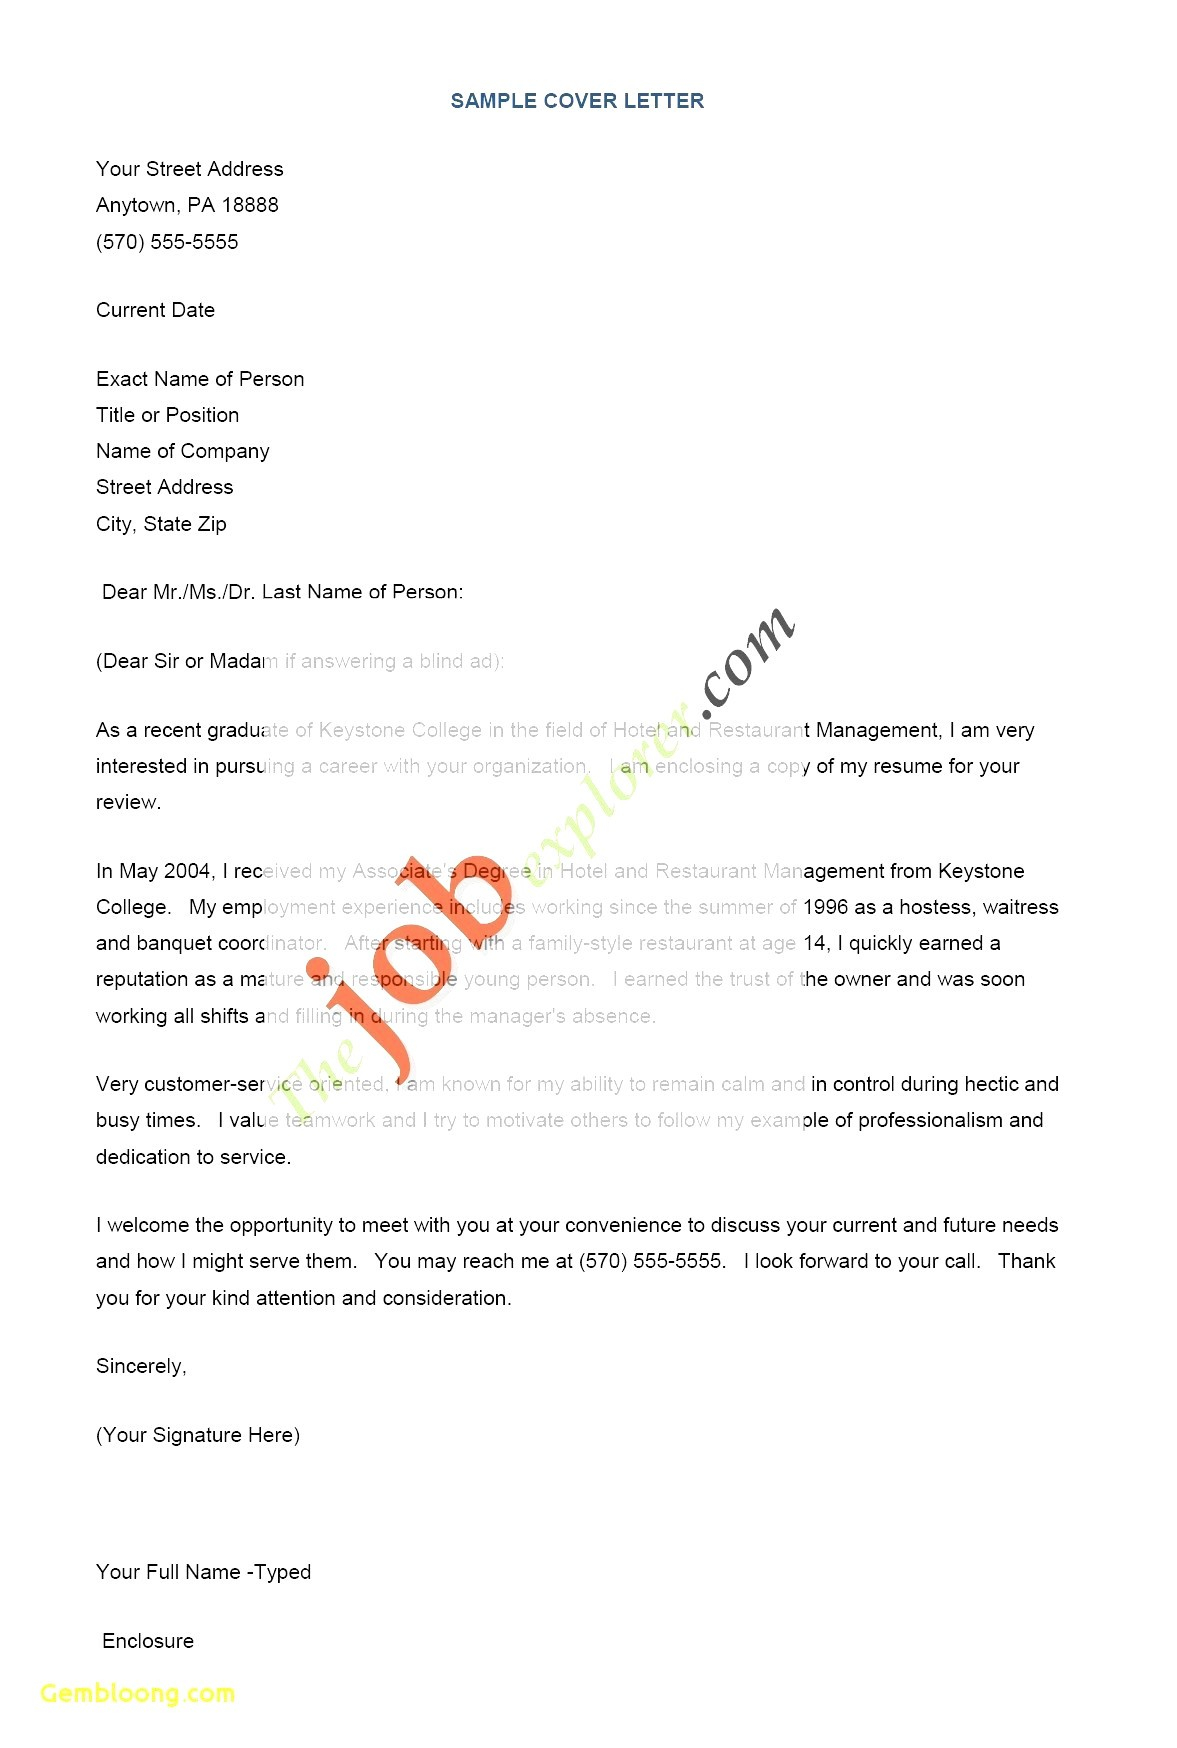 Generate Resume From Linkedin - Free Resume Builder Word Doc Resume Resume Examples Argwl0zwbq